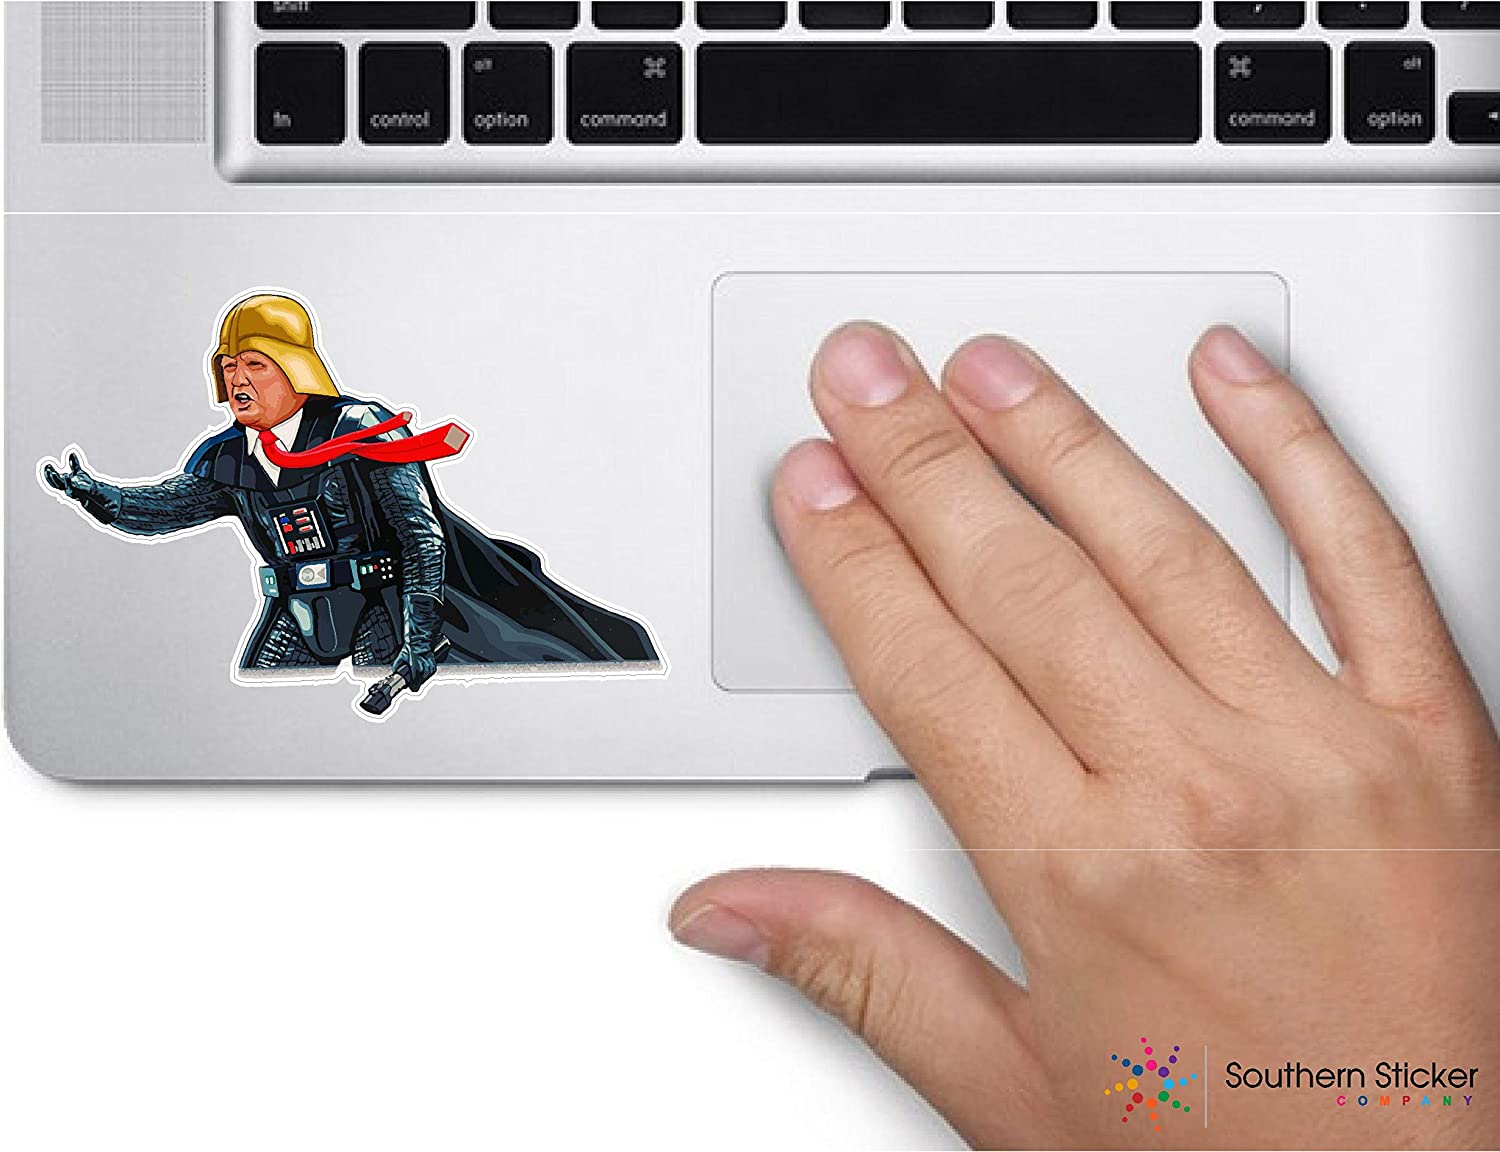 Darth idious Trump Vader 4x3 Size inches USA Sticker Love Baby Laptop car Window Truck 2020 Presidential Bernie Sanders Donald Trump - Made and Shipped in USA